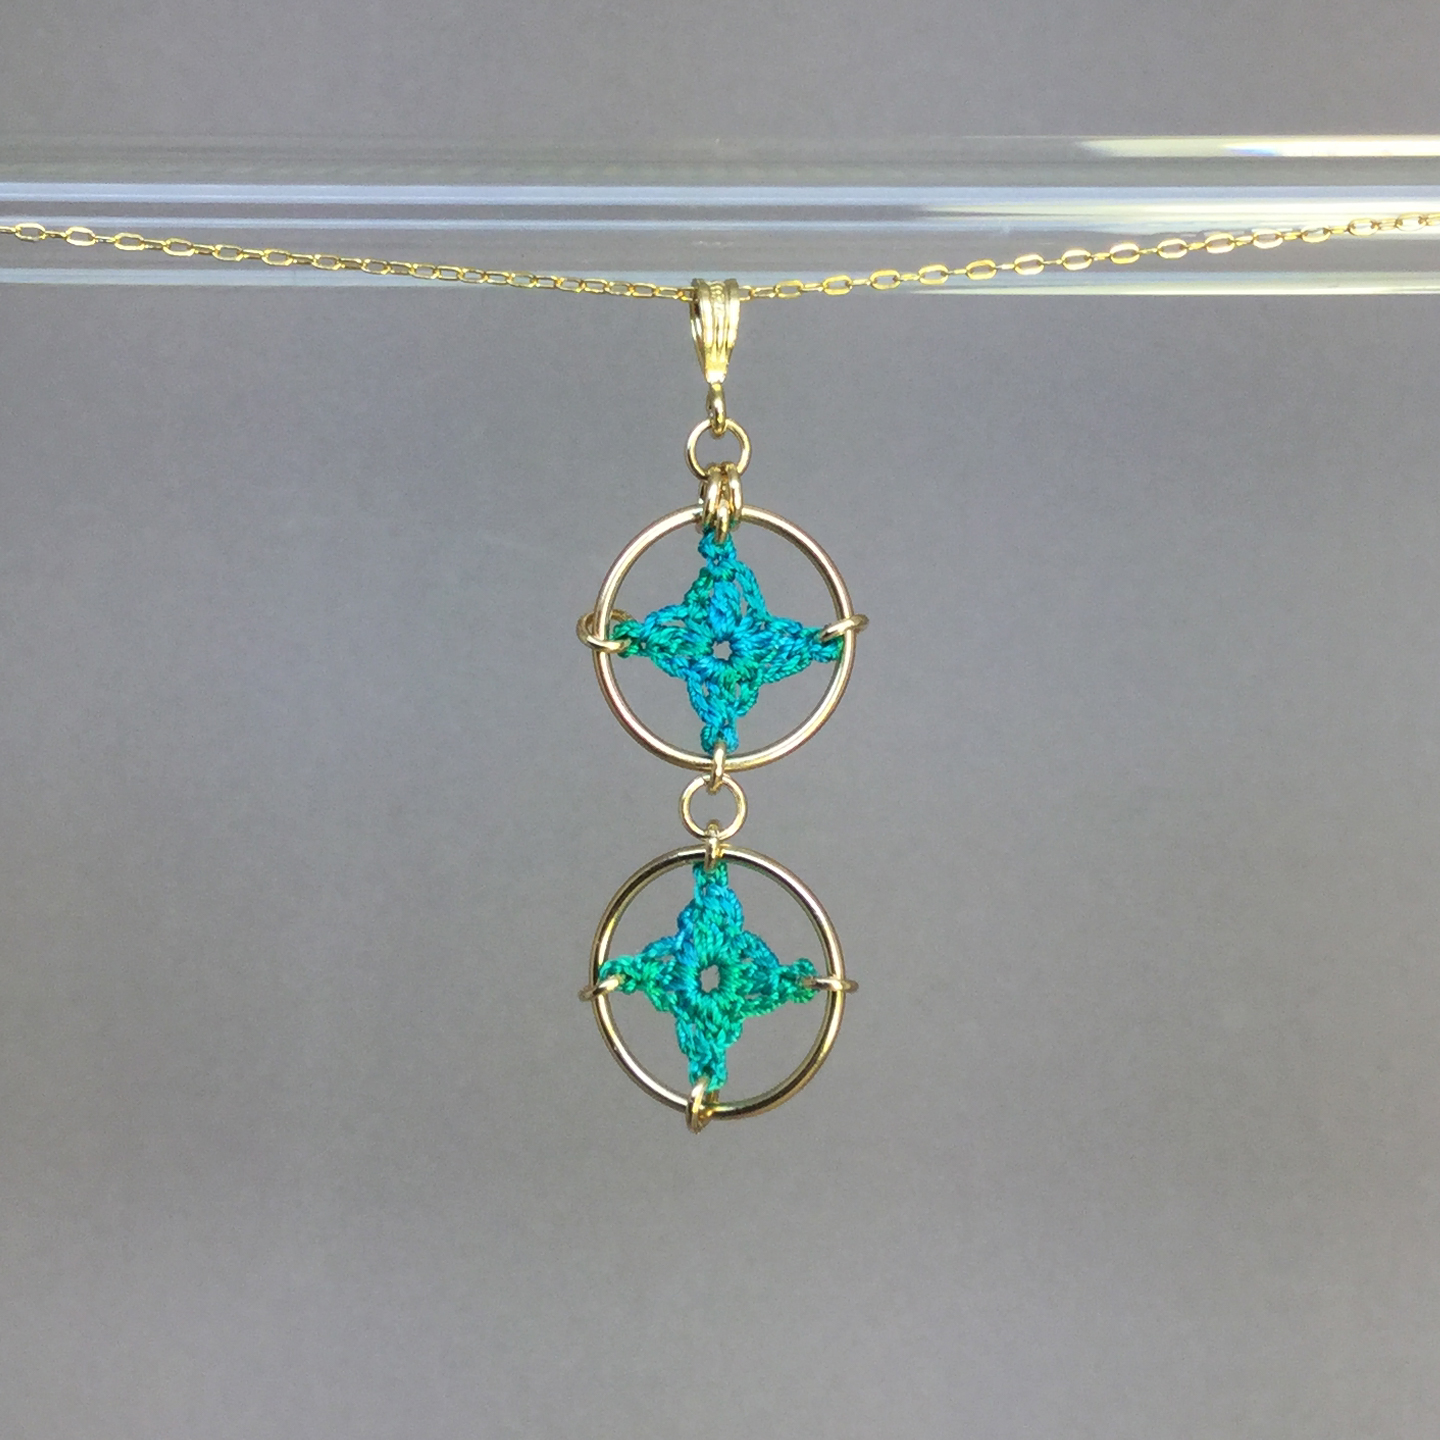 Spangles 2 necklace, gold, shamrock green thread